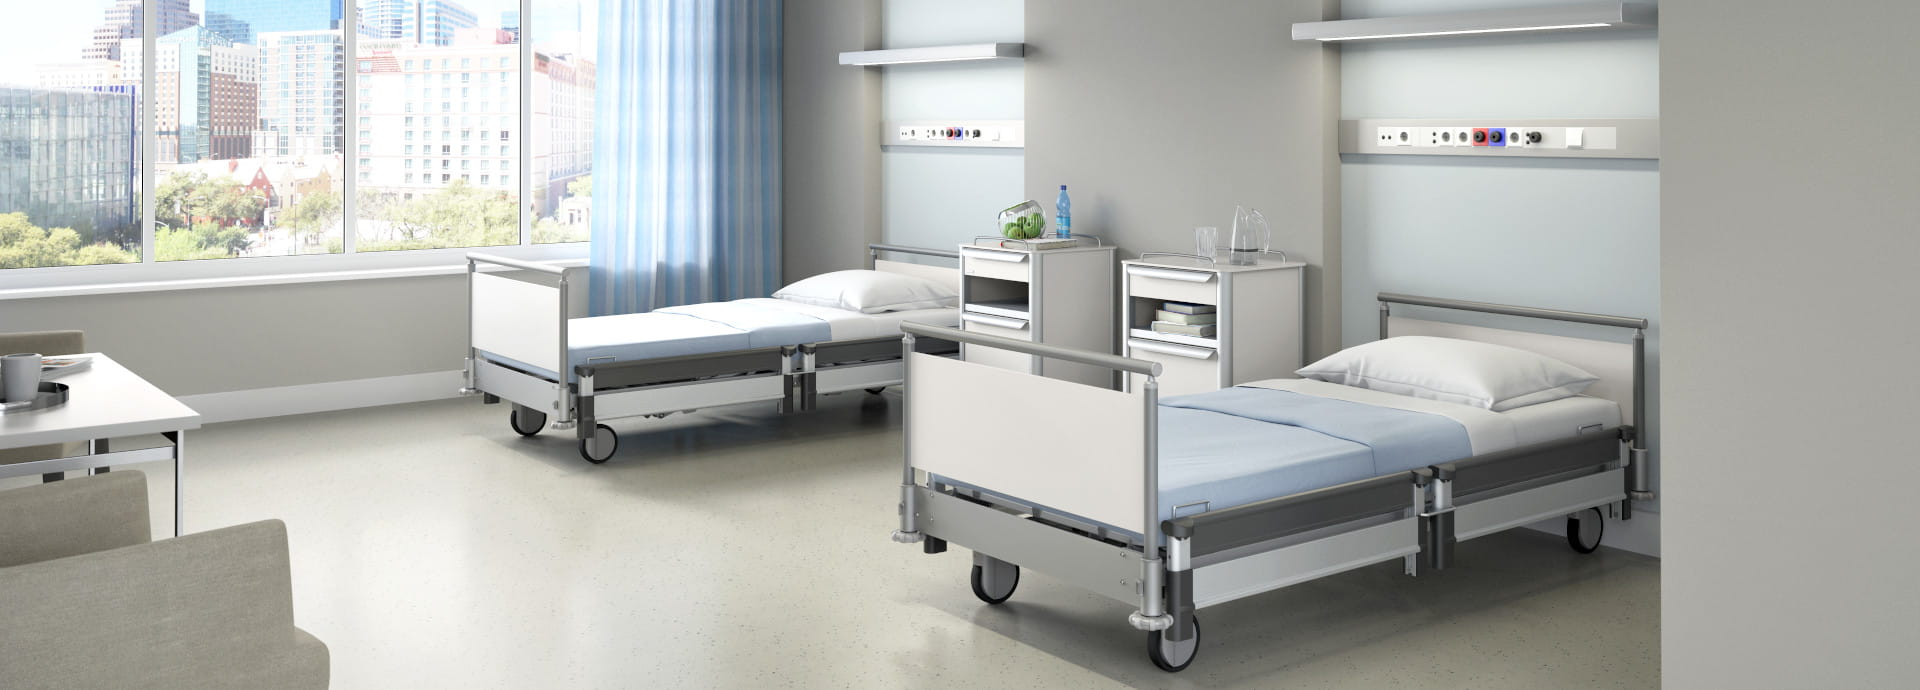 More than hospital bed: low height hospital bed + cozy design = hospitel